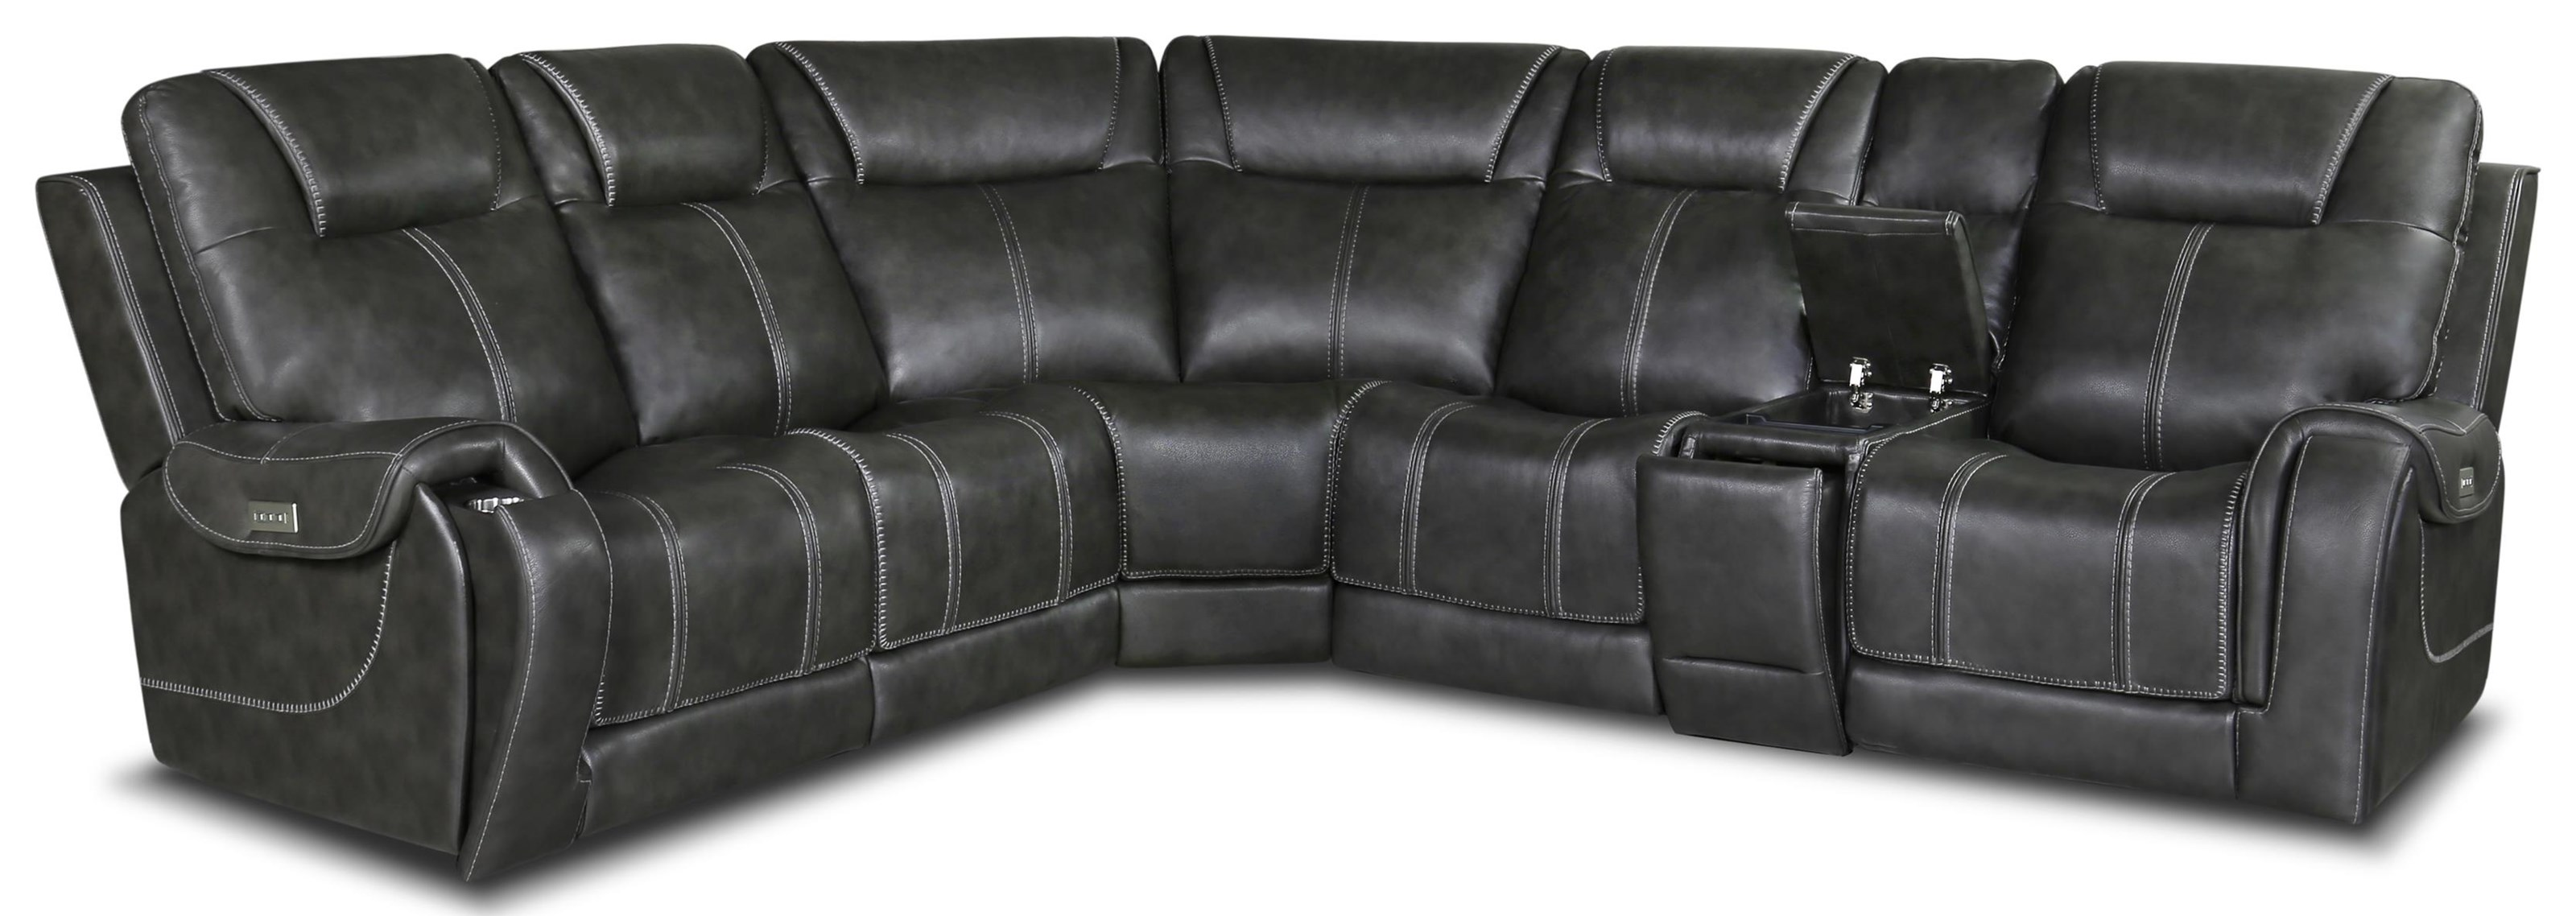 563 Sectional Six Piece Power sectional by Moto Motion at Furniture Fair - North Carolina